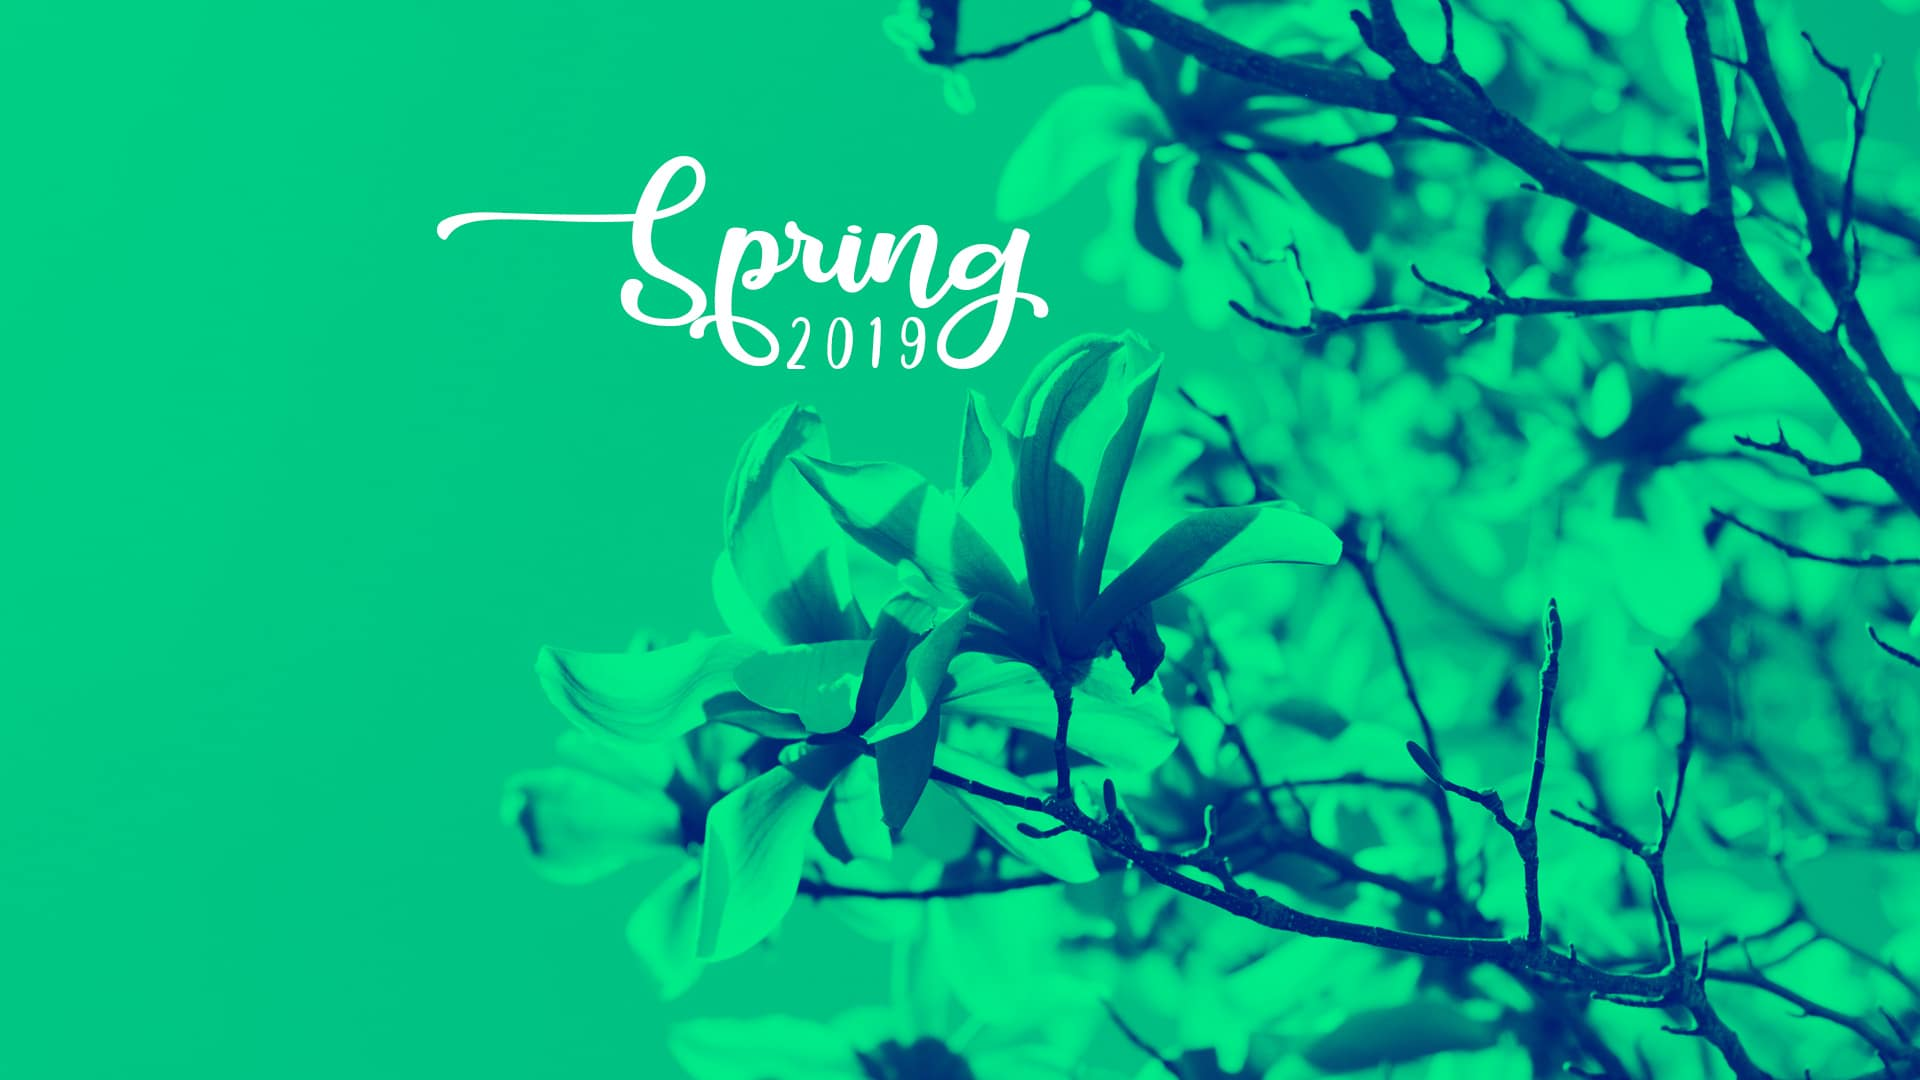 September 2019 Wallpaper Spring changes   Flicker Leap 1920x1080